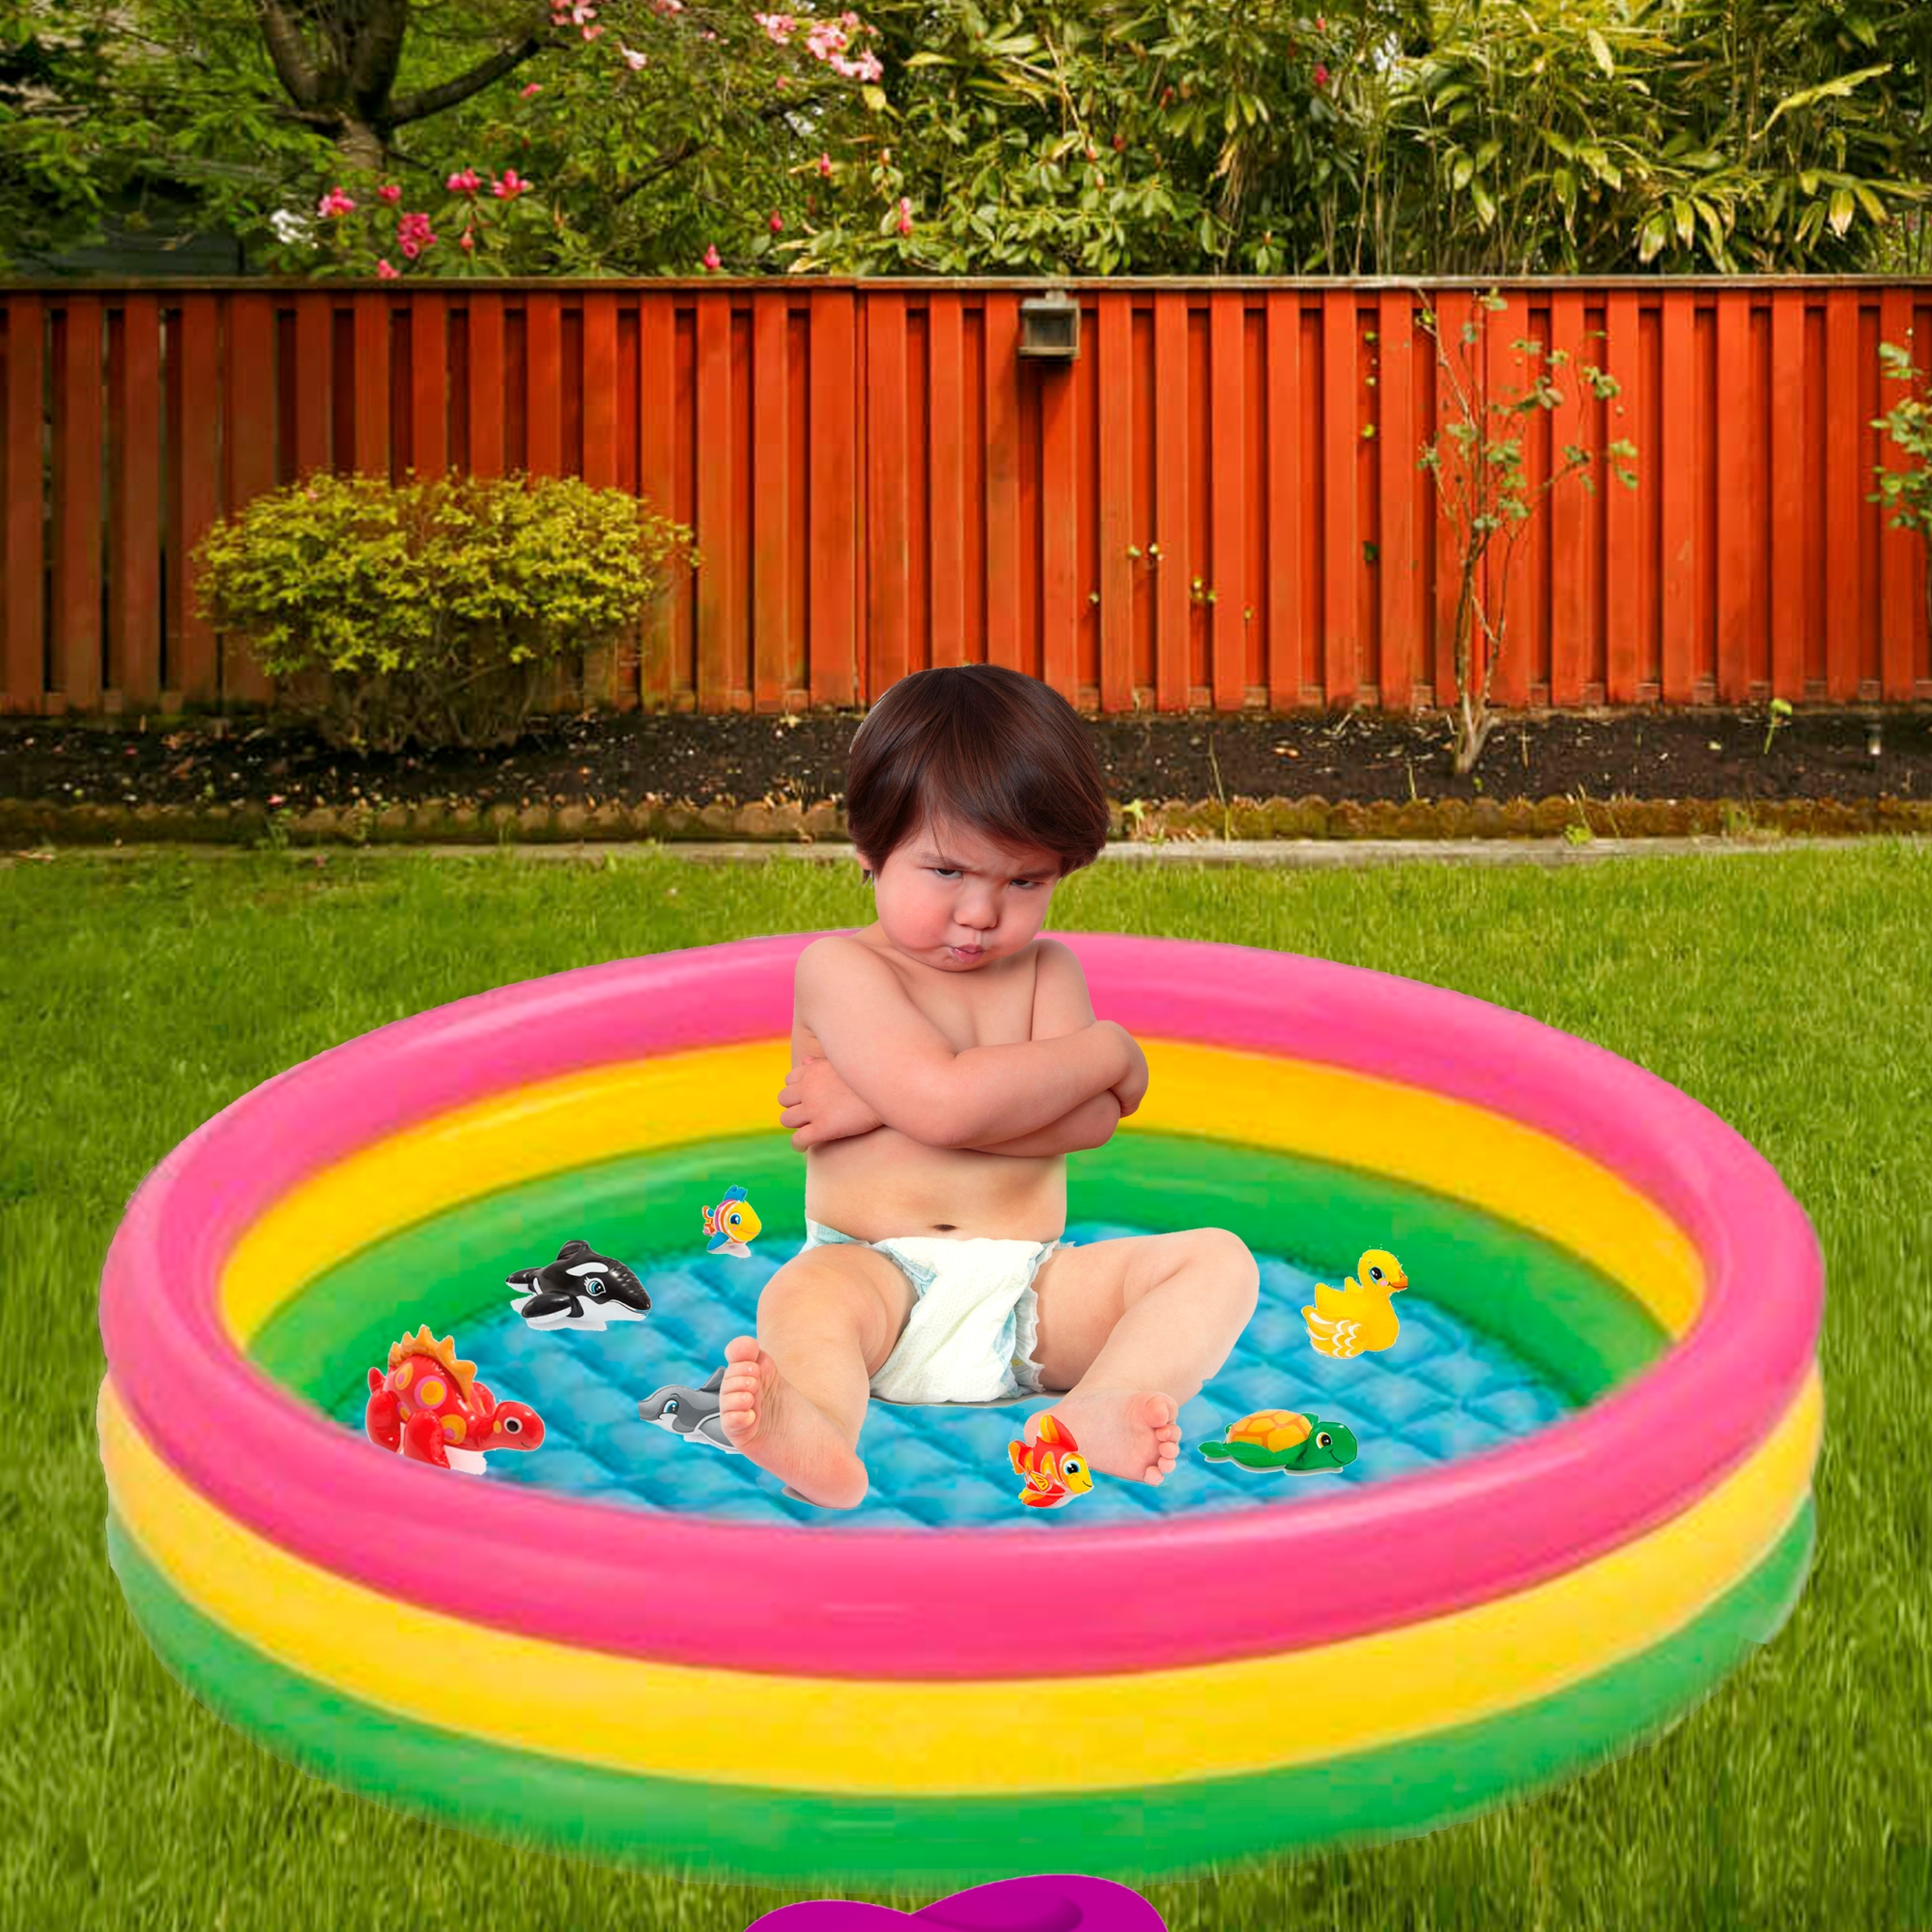 Angry baby sitting in the middle of a yard pool